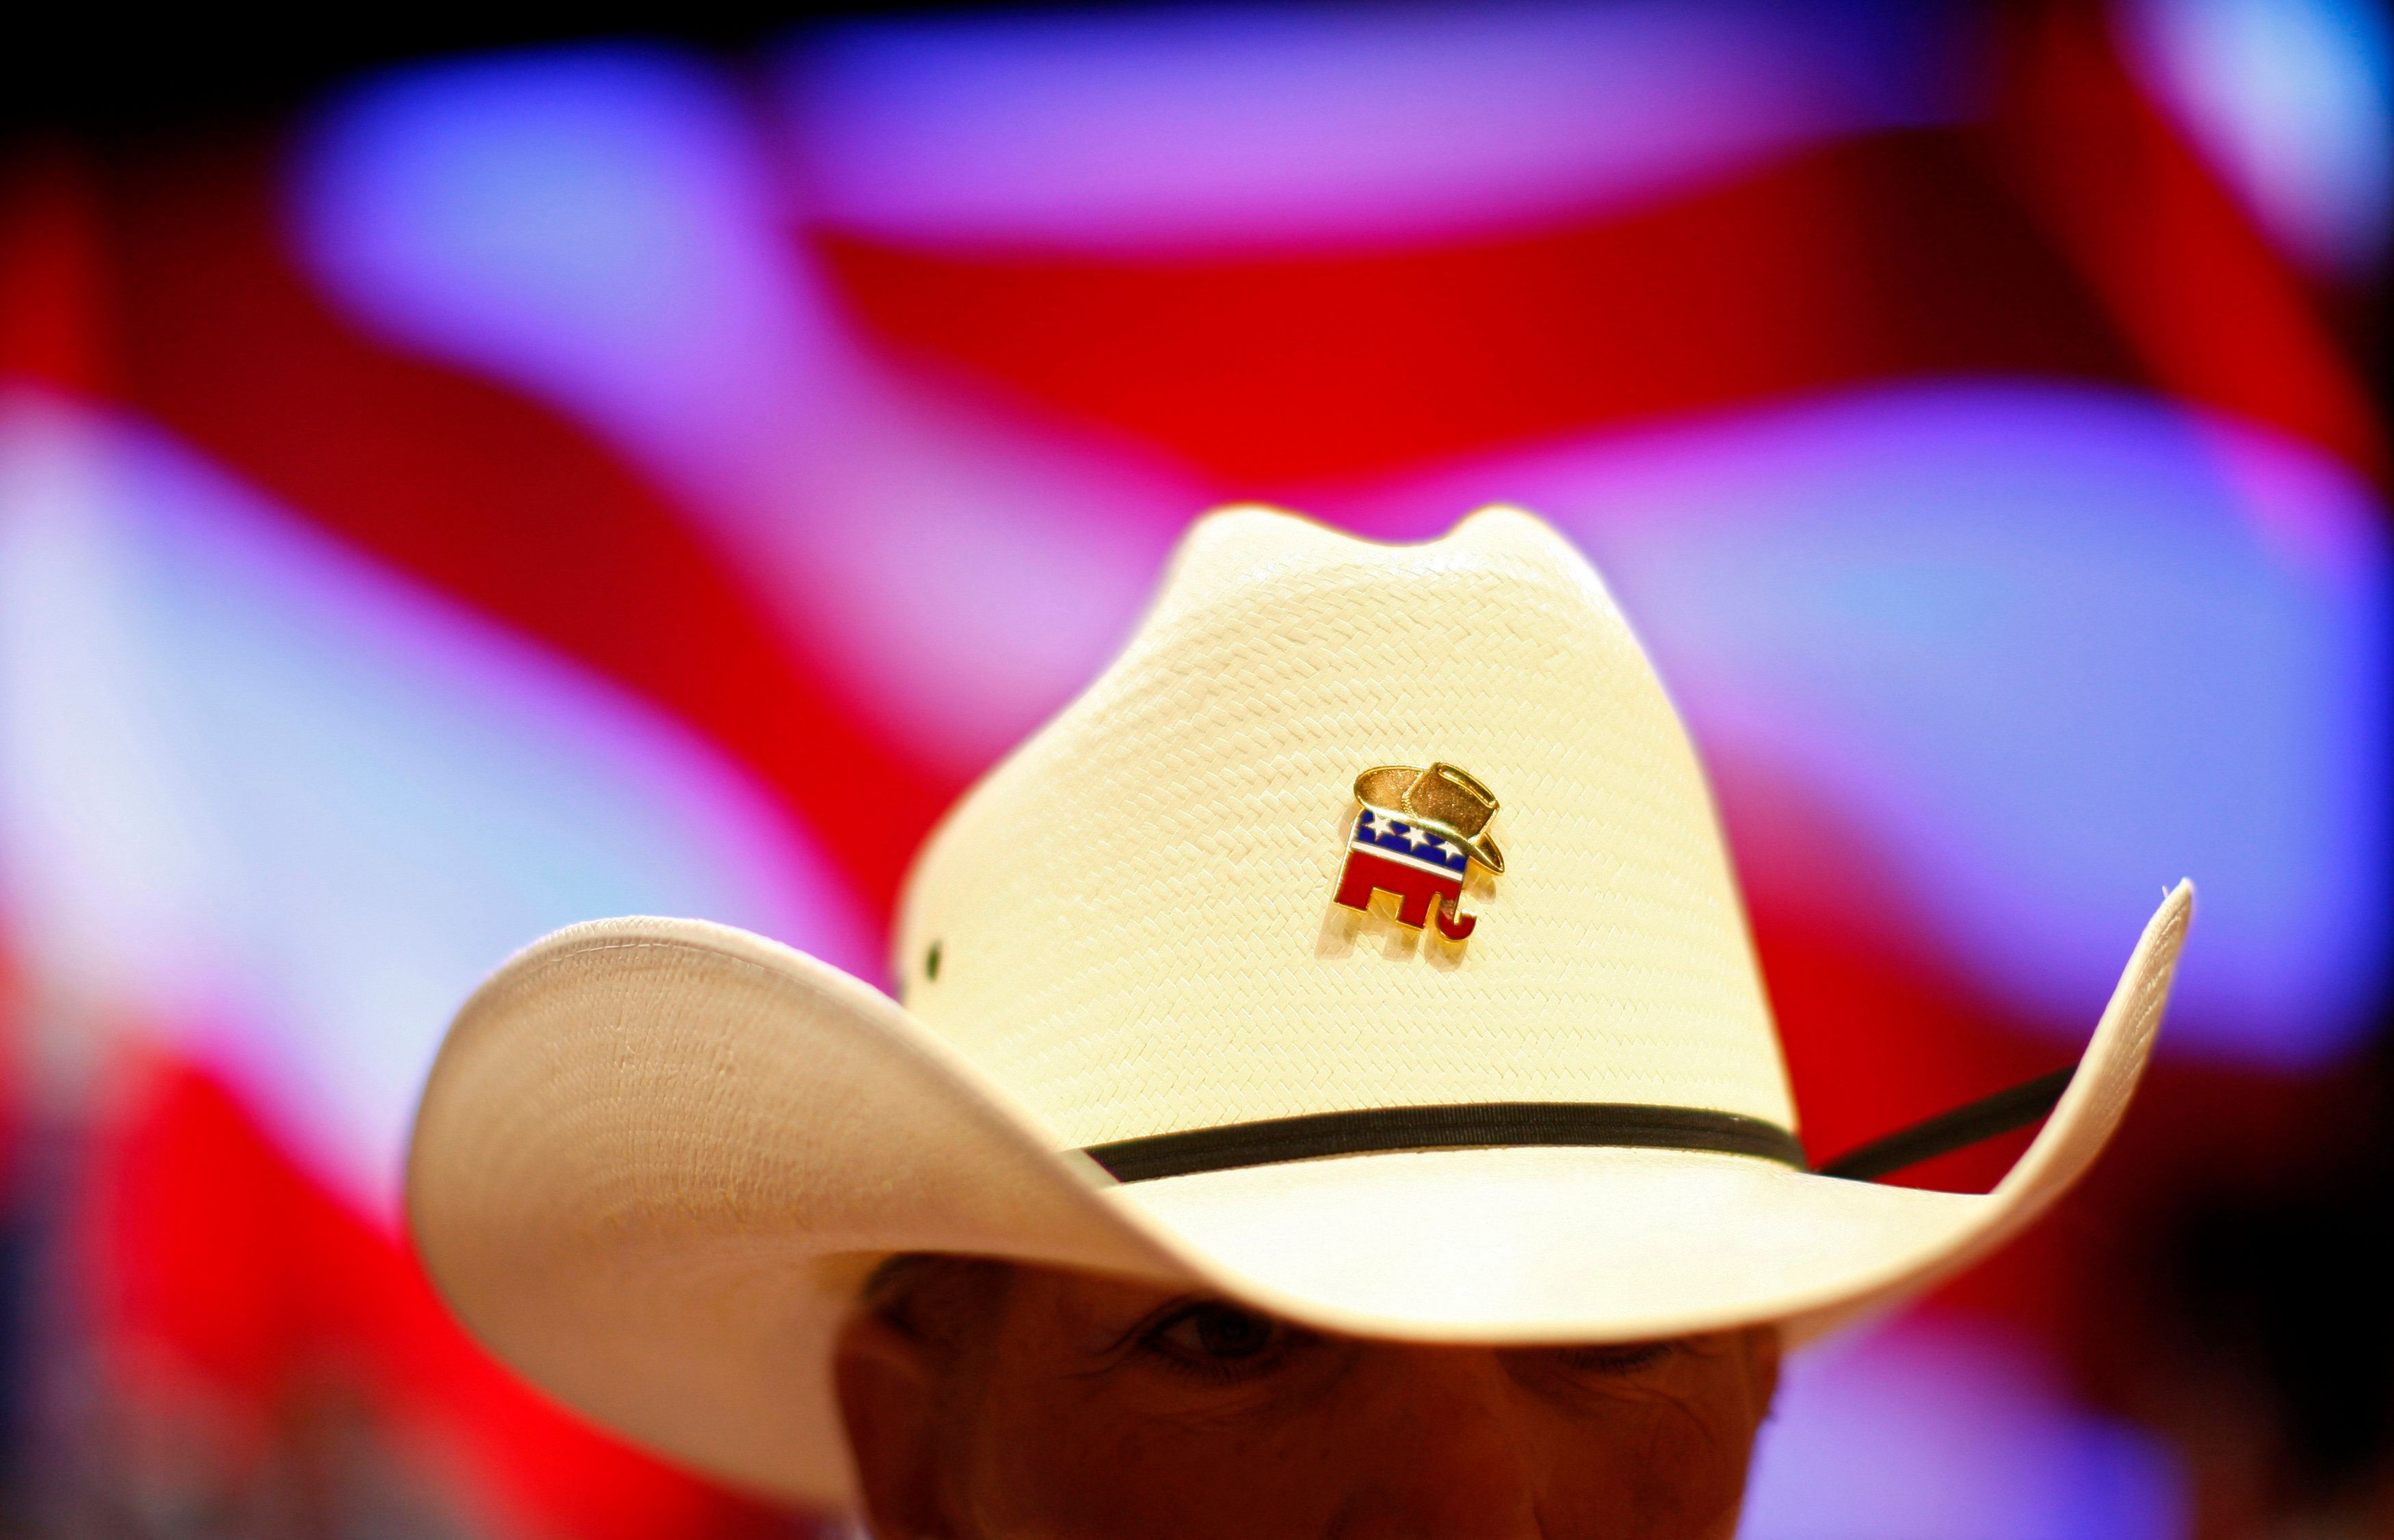 Texas delegate Kathie Whitford-Freeman wears a Republican pin on her hat at the 2008 Republican National Convention in St. Paul, Minnesota September 1, 2008.   REUTERS/Jim Young   (UNITED STATES)      US PRESIDENTIAL ELECTION CAMPAIGN 2008  (USA)